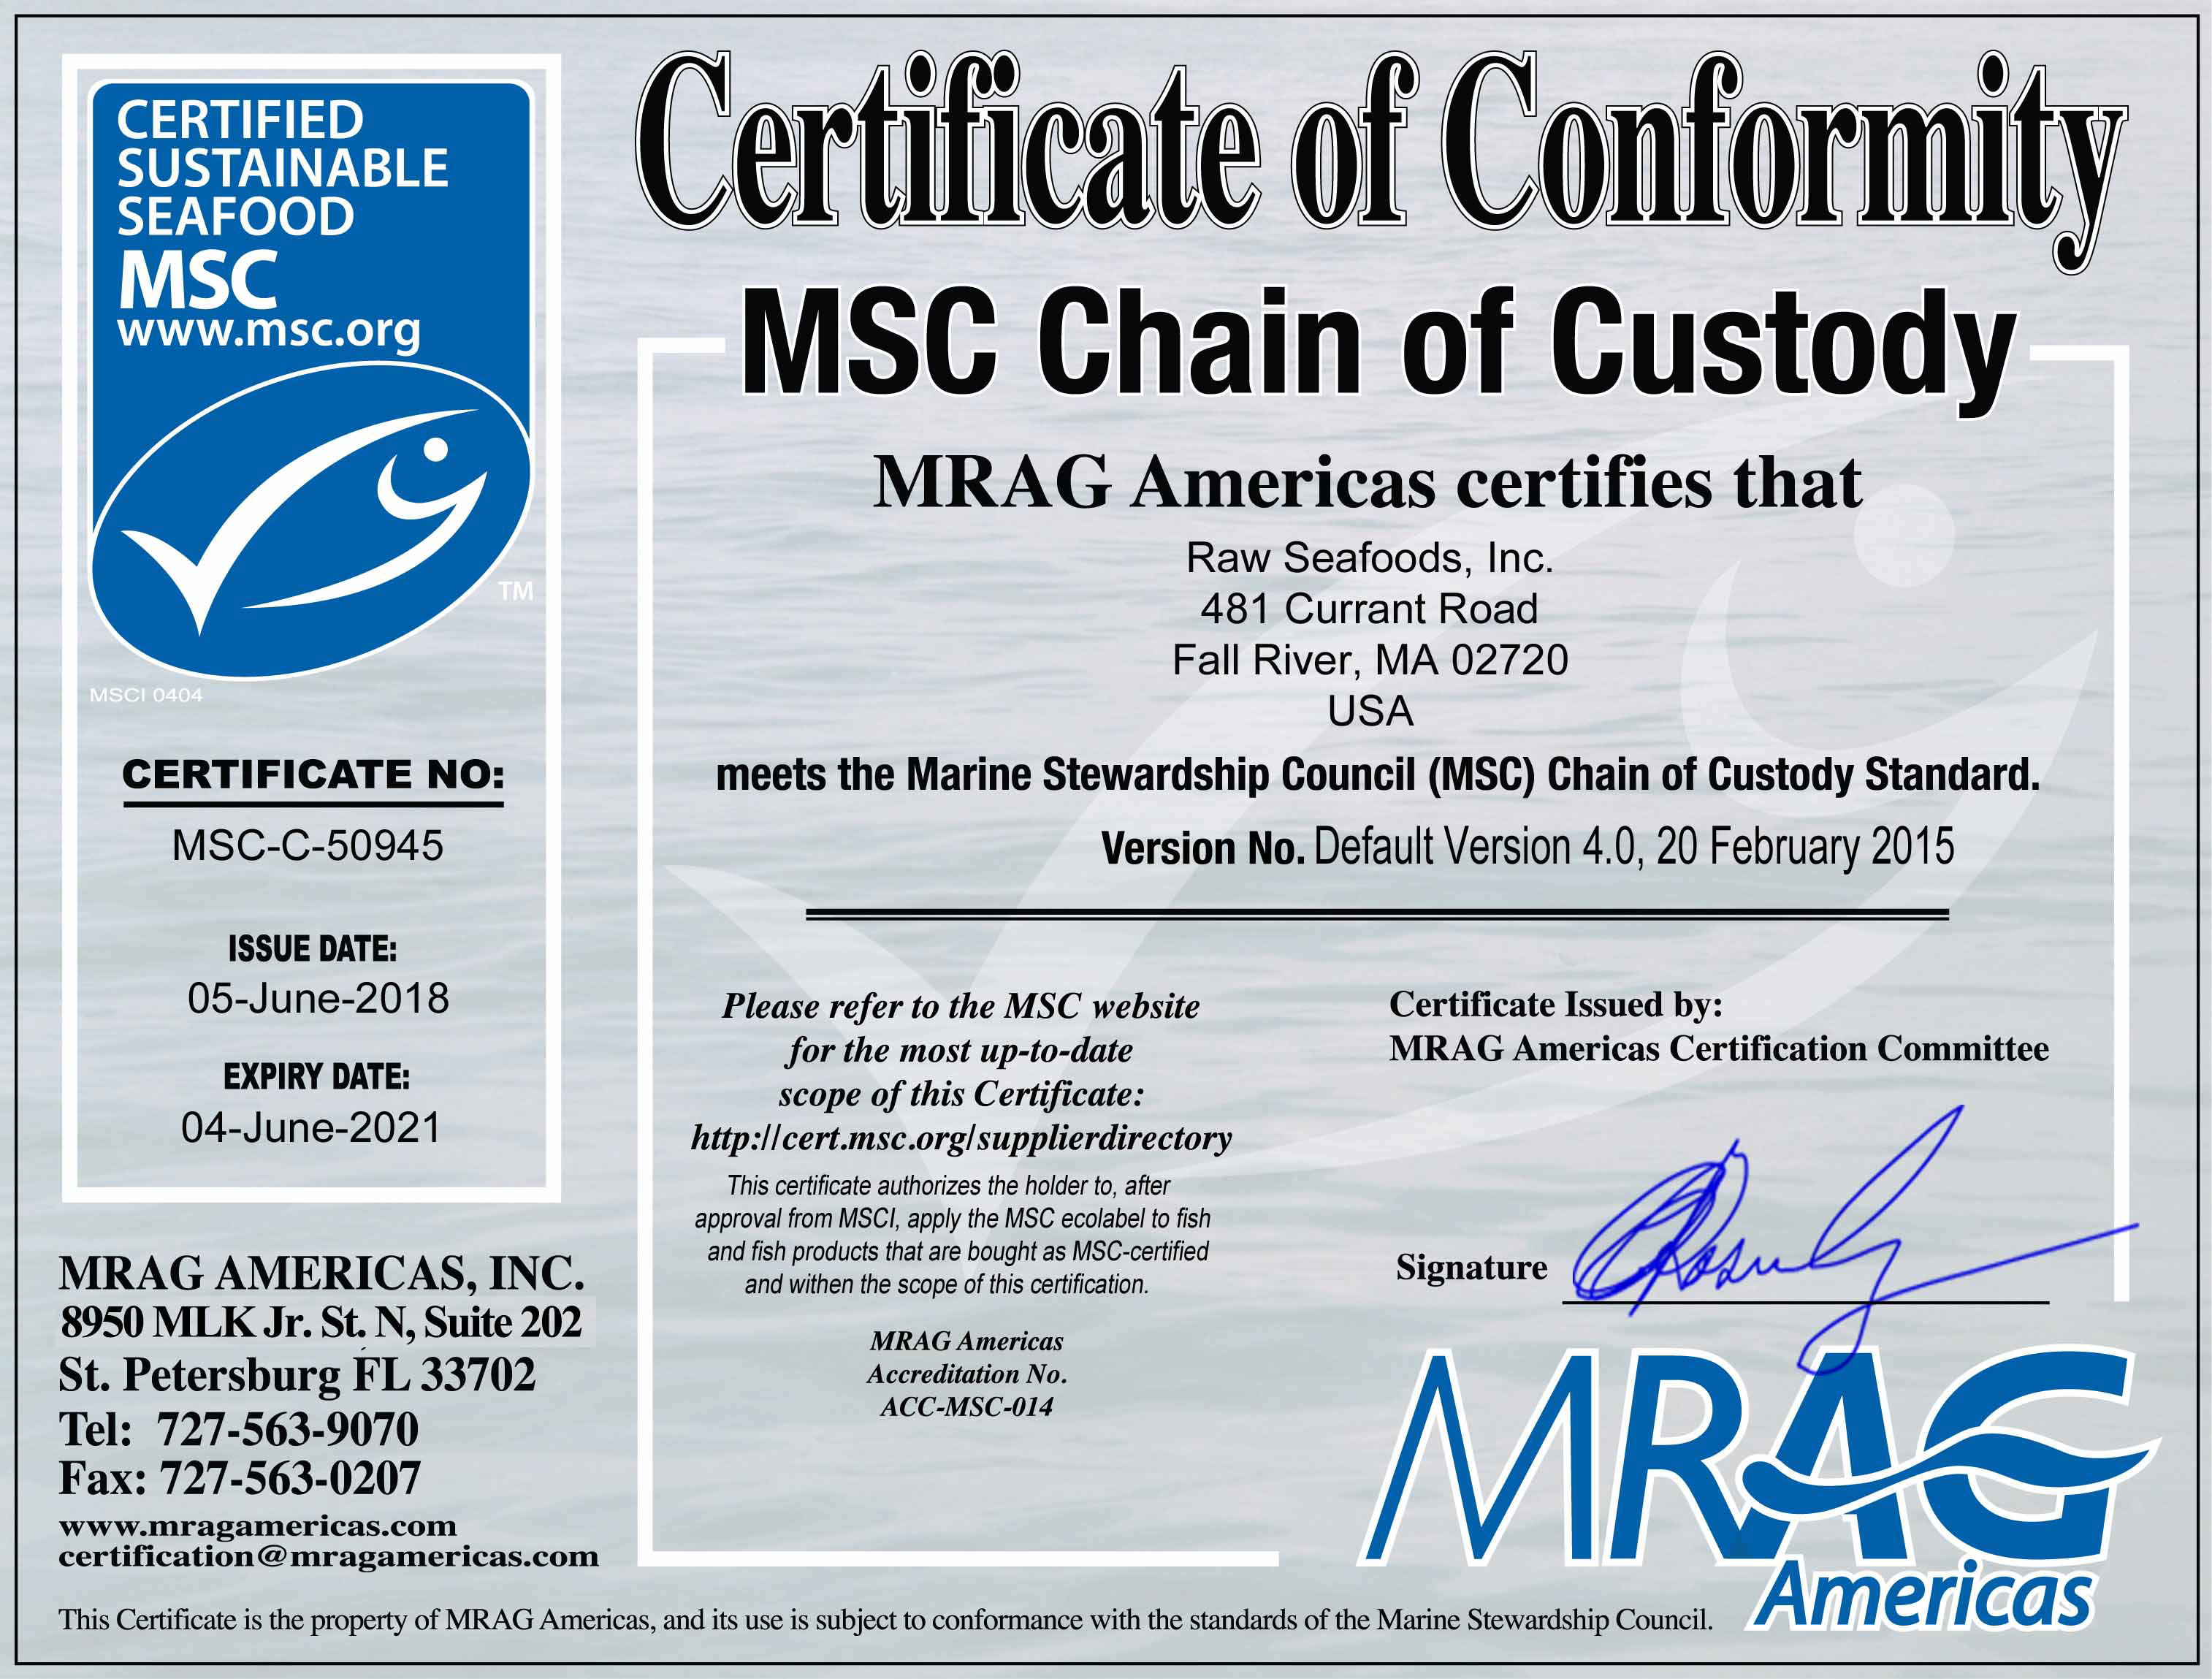 Food Safety Certifications Raw Seafoods Inc. Holds - Grade A Information